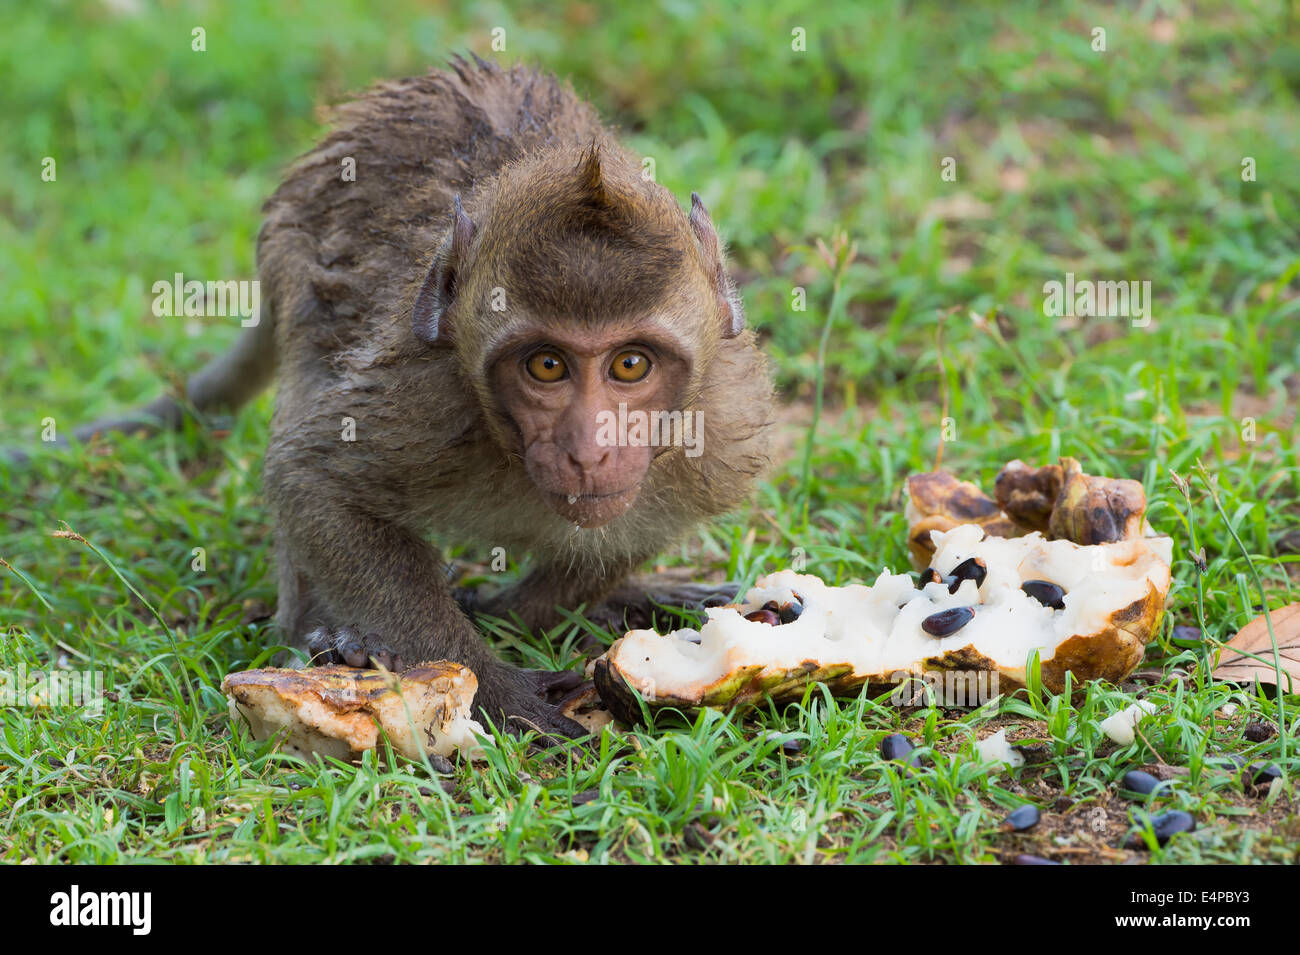 Baby Long-tailed Macaque or Crab-eating Macaque (Macaca fascicularis) eating a fruit, Thailand, Asia - Stock Image